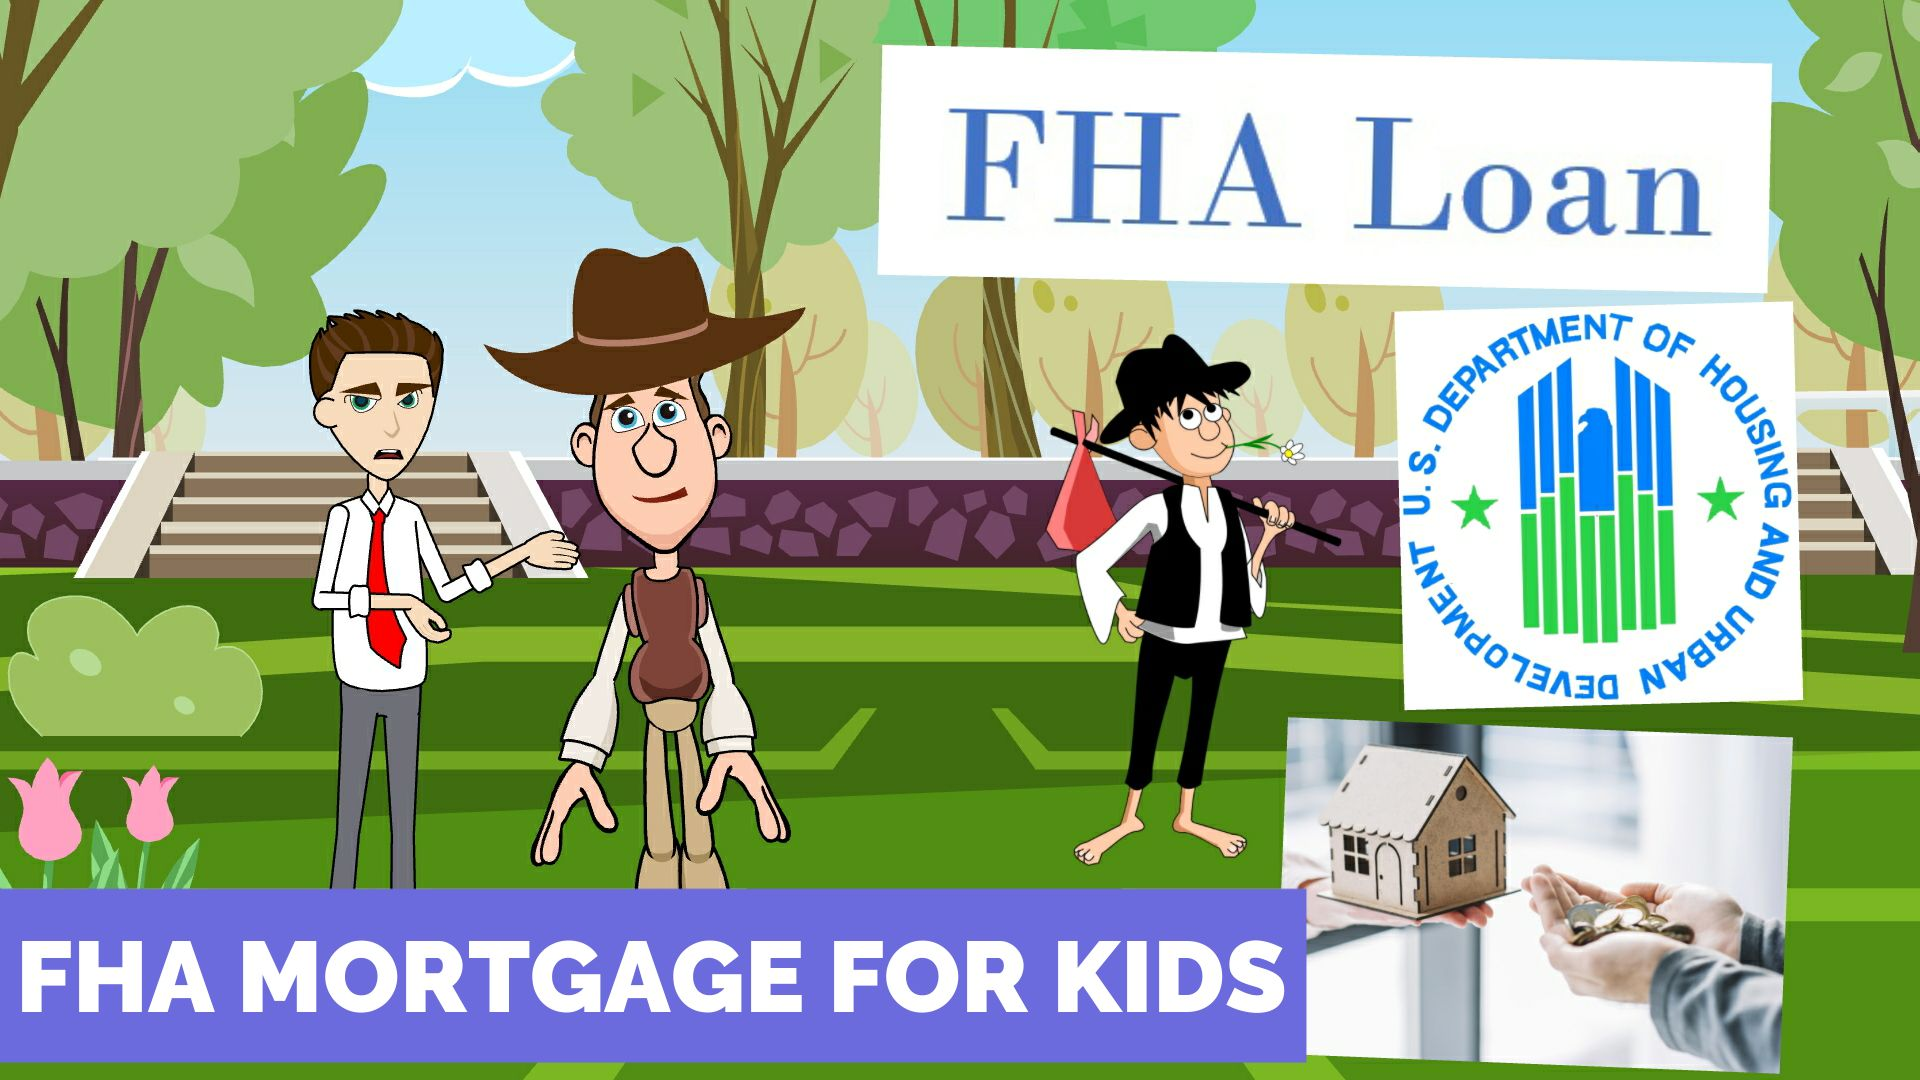 FHA Loan - FHA Mortgage - Federal Housing Administration Loan